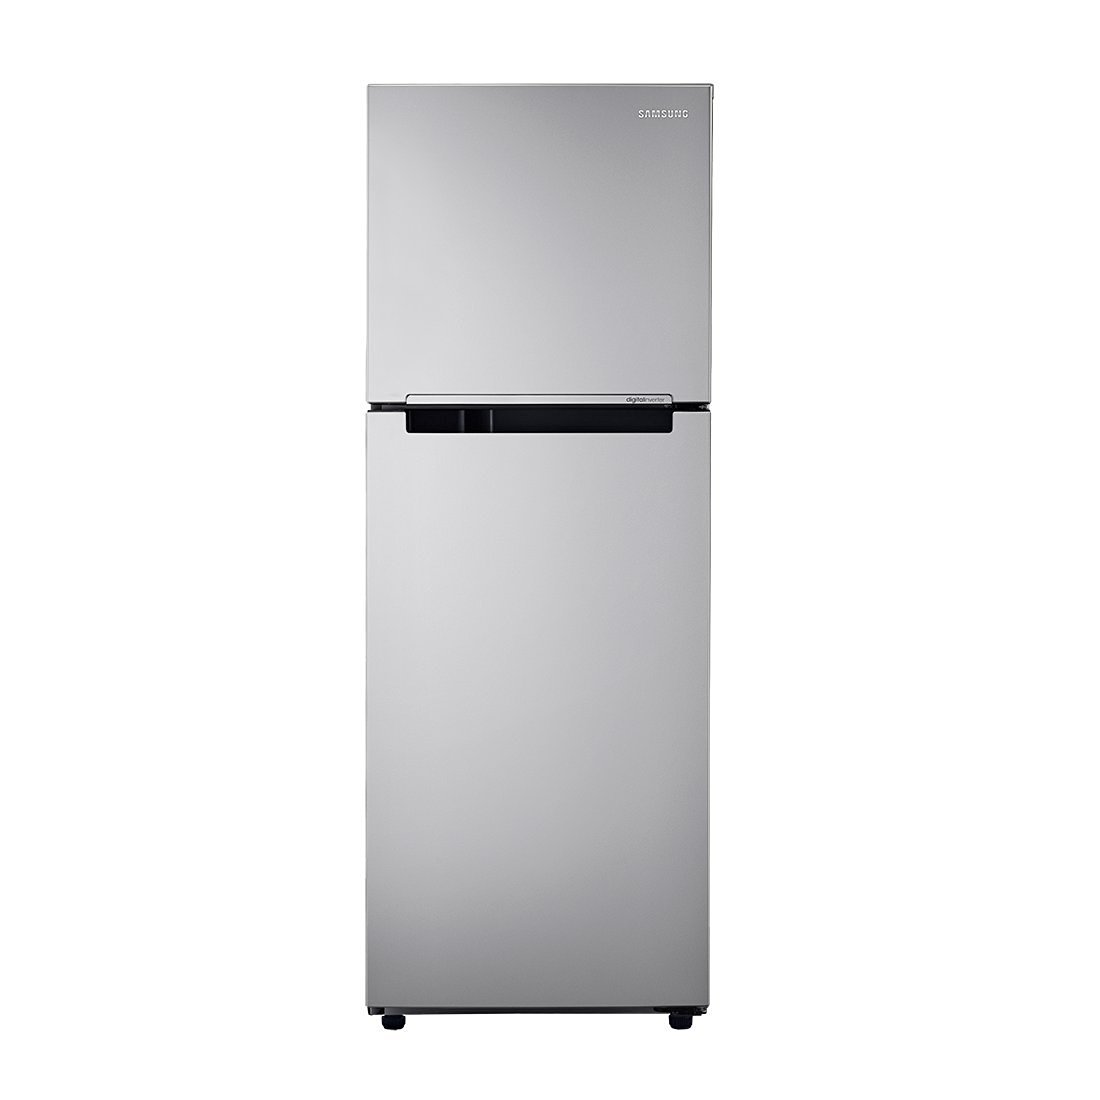 Samsung RT28K3022SE Frost free Double door Refrigerator  253 Ltrs, 2 Star Rating, Elective Silver